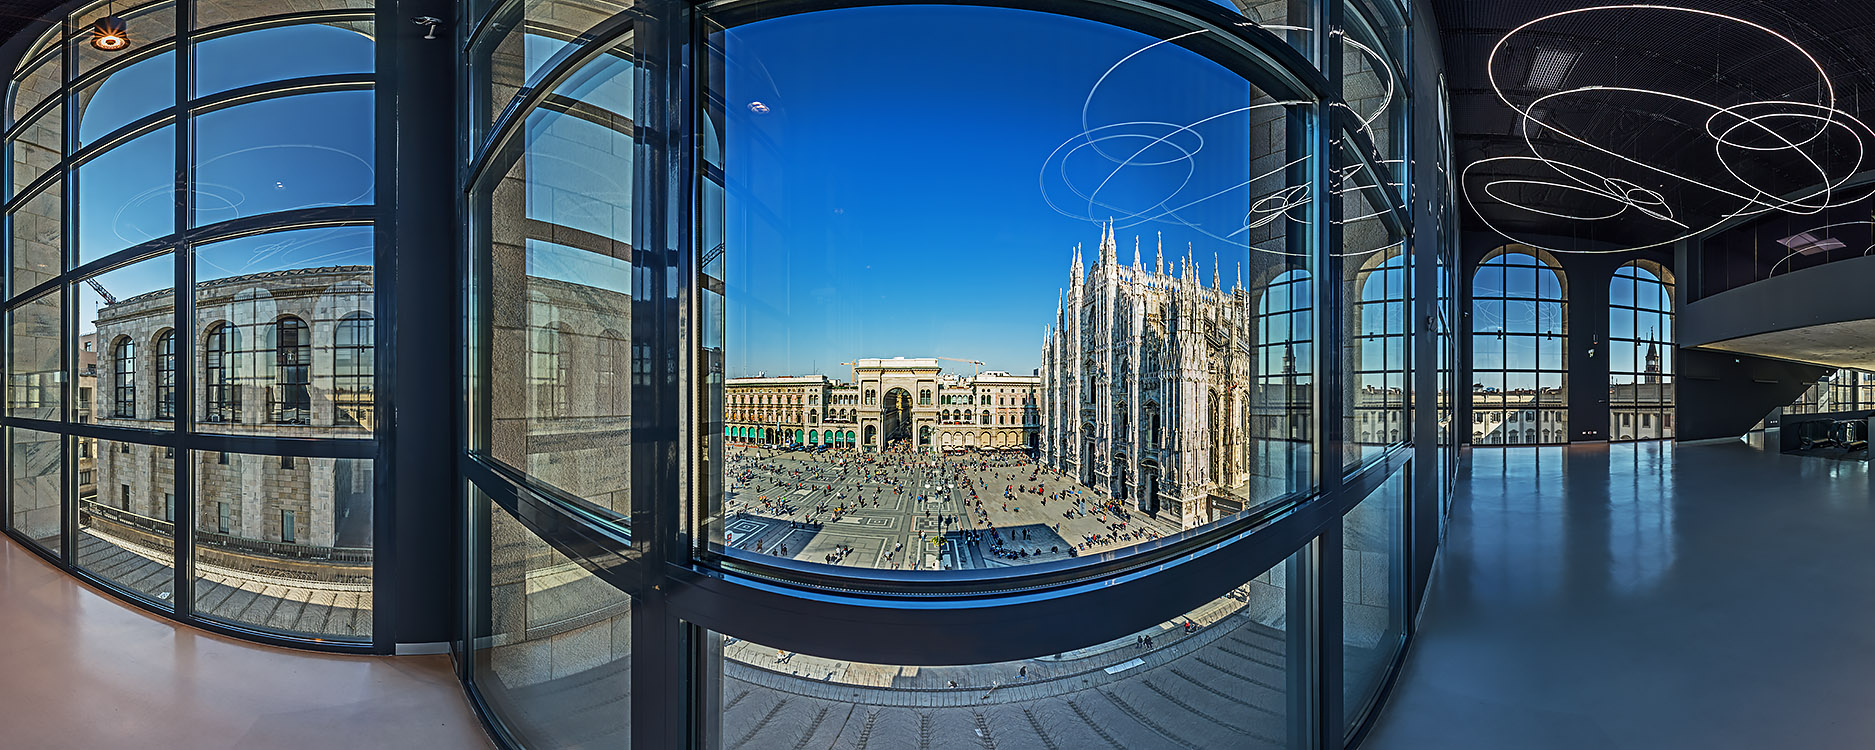 The nice view on Piazza del Duomo and the Lucio Fontana Neon Sculpture